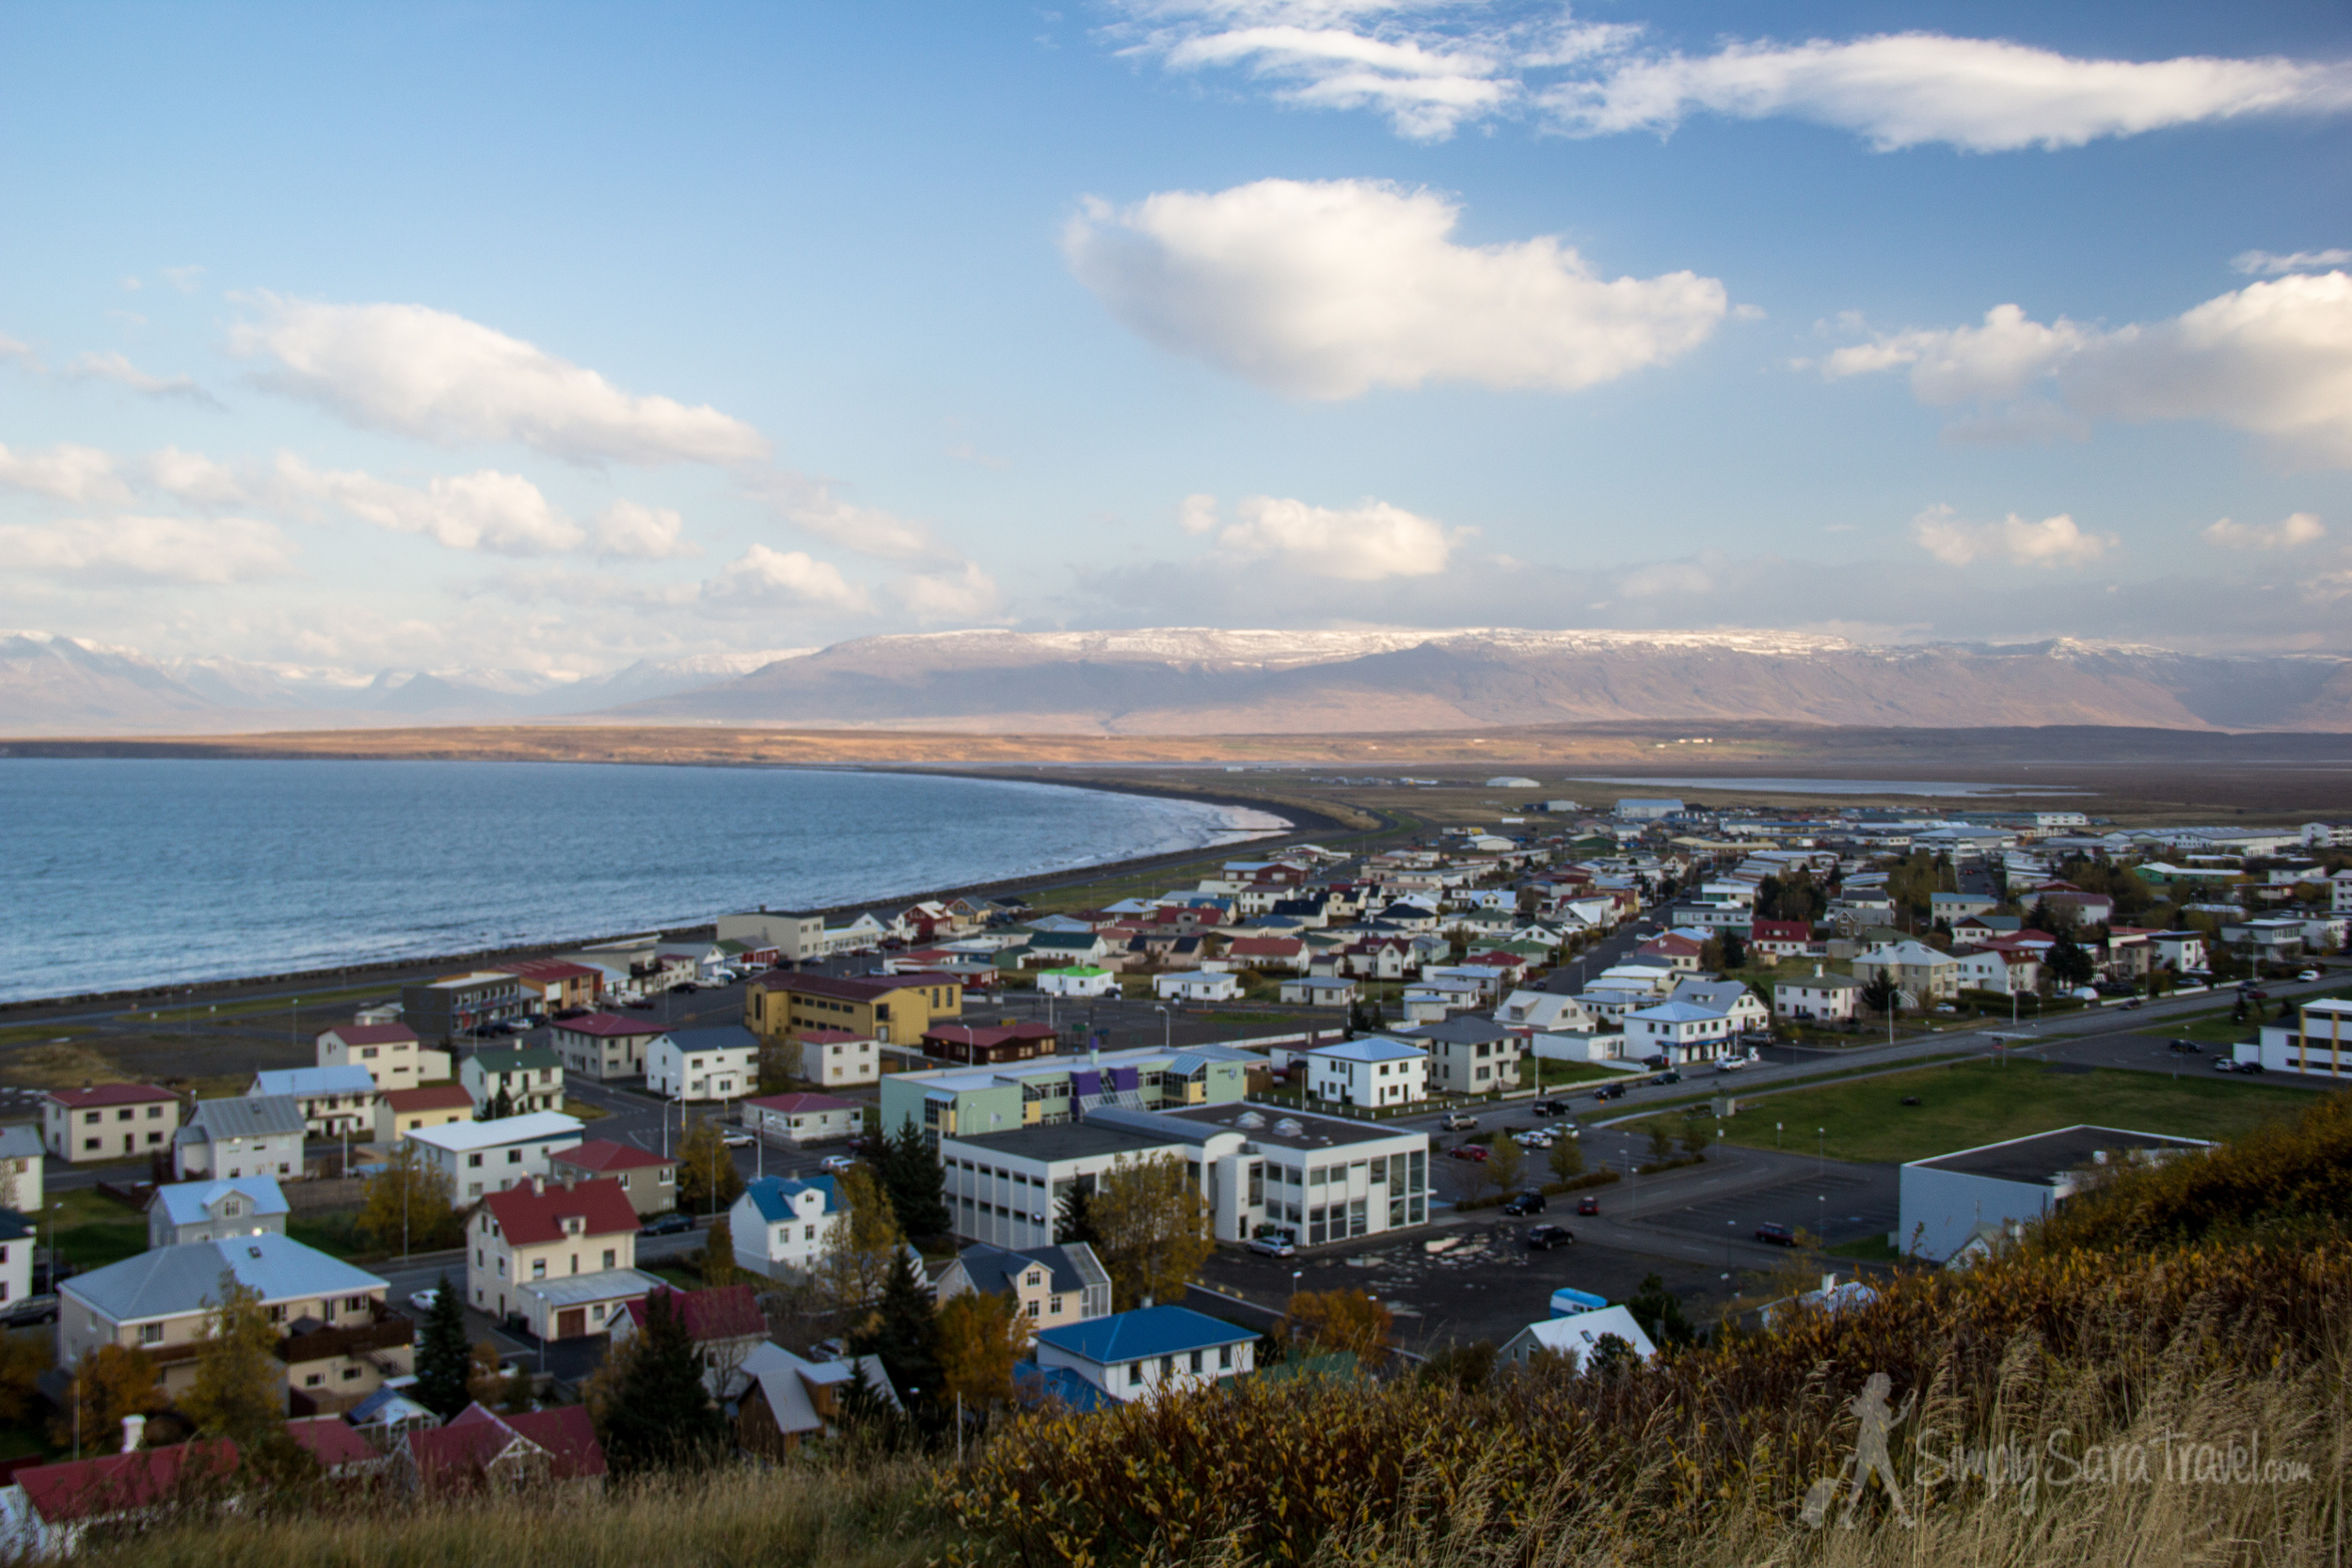 The view from the top of the hill of Sauðárkrókur